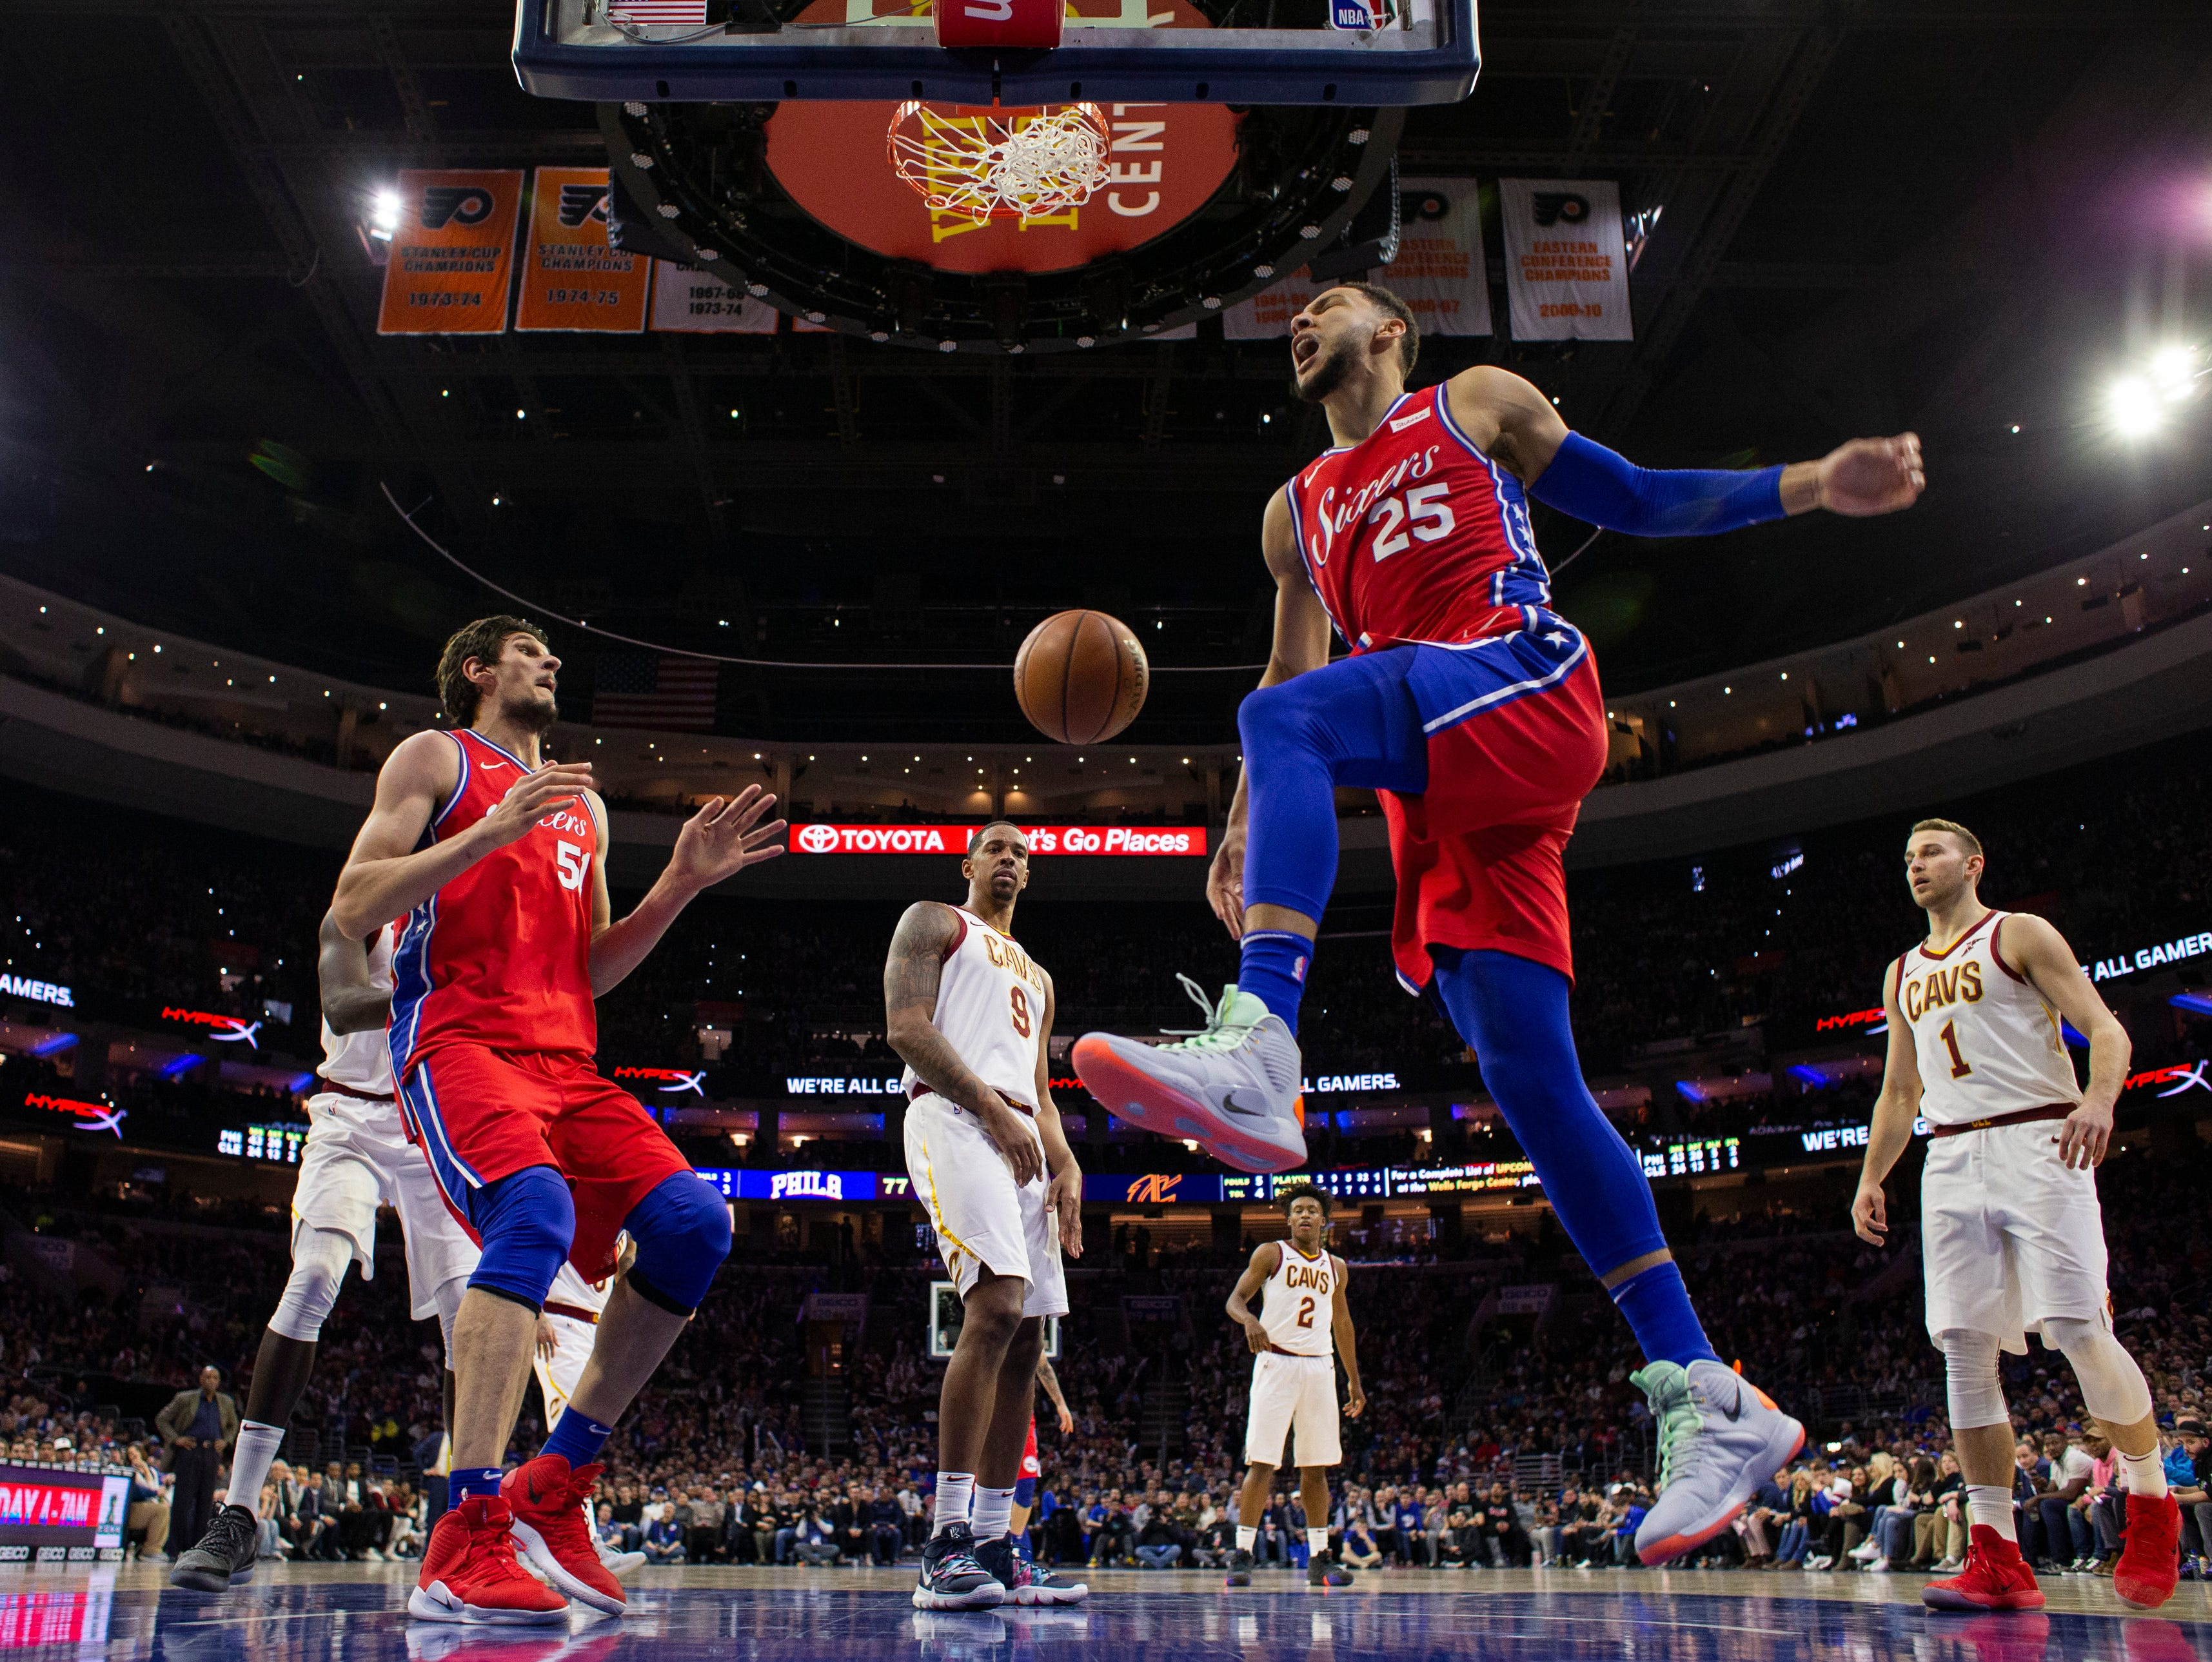 Philadelphia 76ers' Ben Simmons, right, of Australia, reacts to his dunk during the second half of an NBA basketball game against the Cleveland Cavaliers, Tuesday, March 12, 2019, in Philadelphia. The 76ers won 106-99. (AP Photo/Chris Szagola)